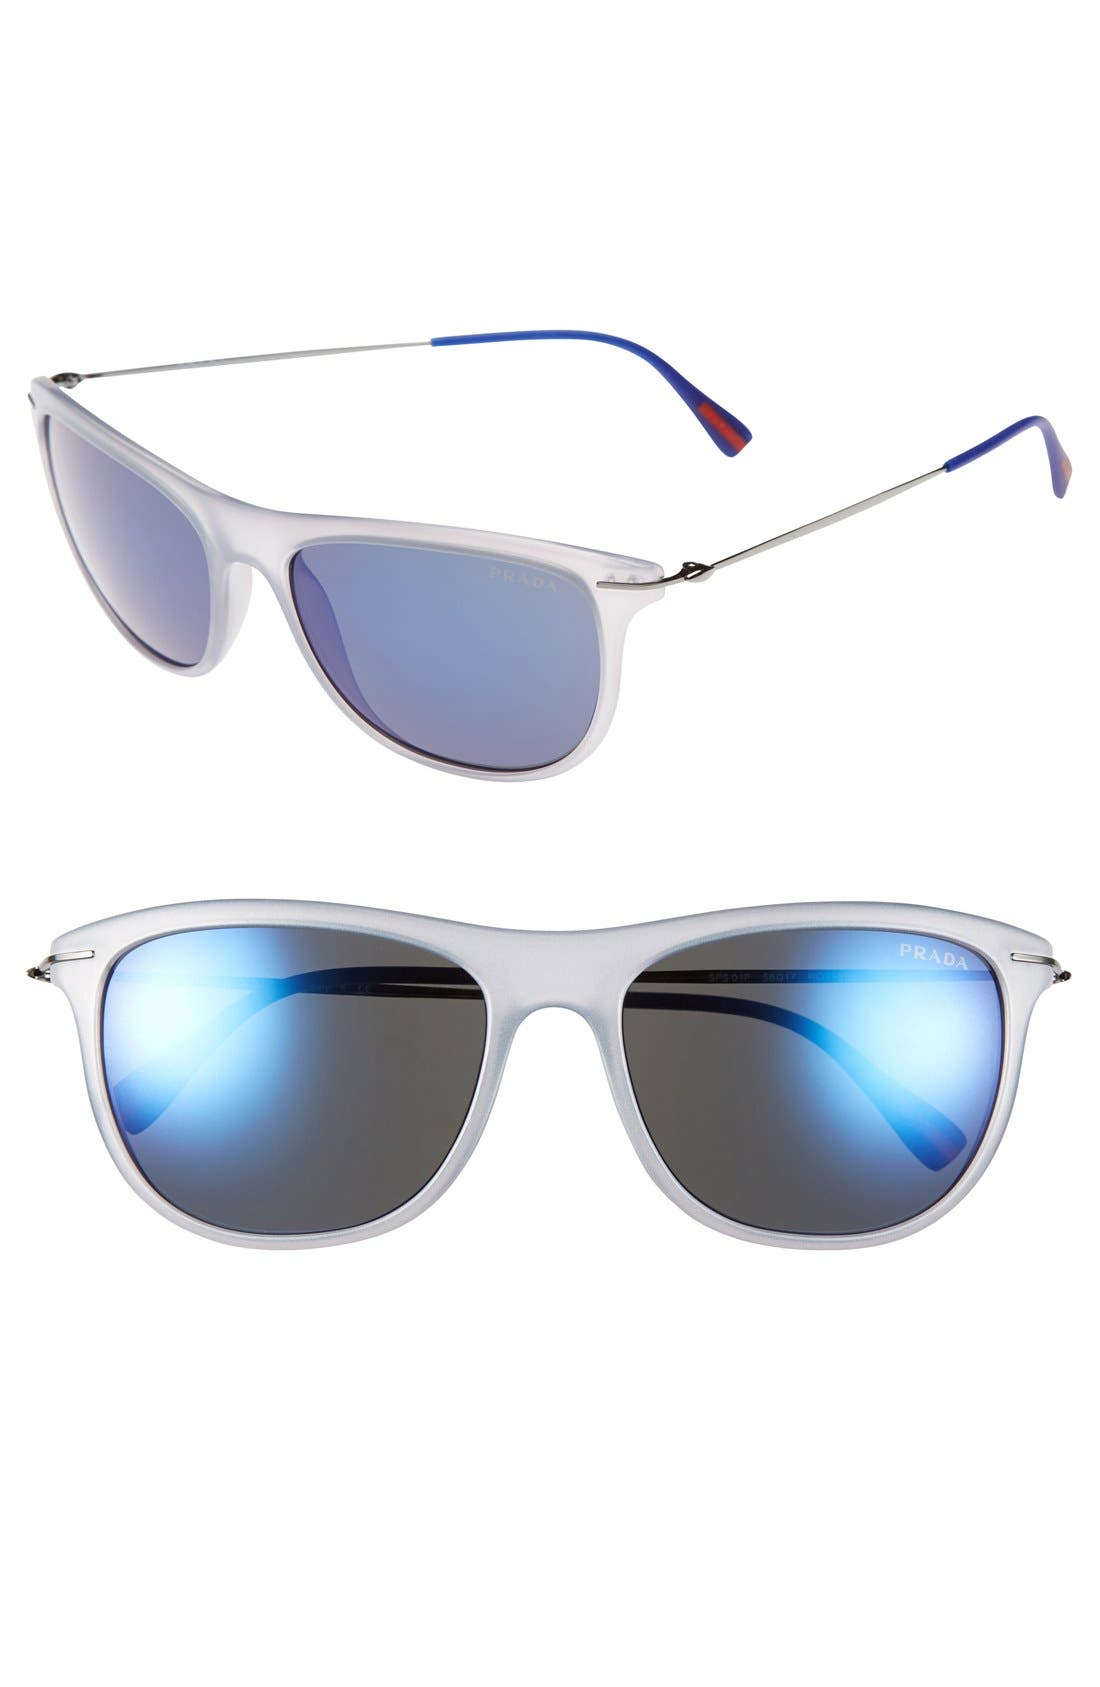 Main Image - Prada 'Pilot' 56mm Sunglasses